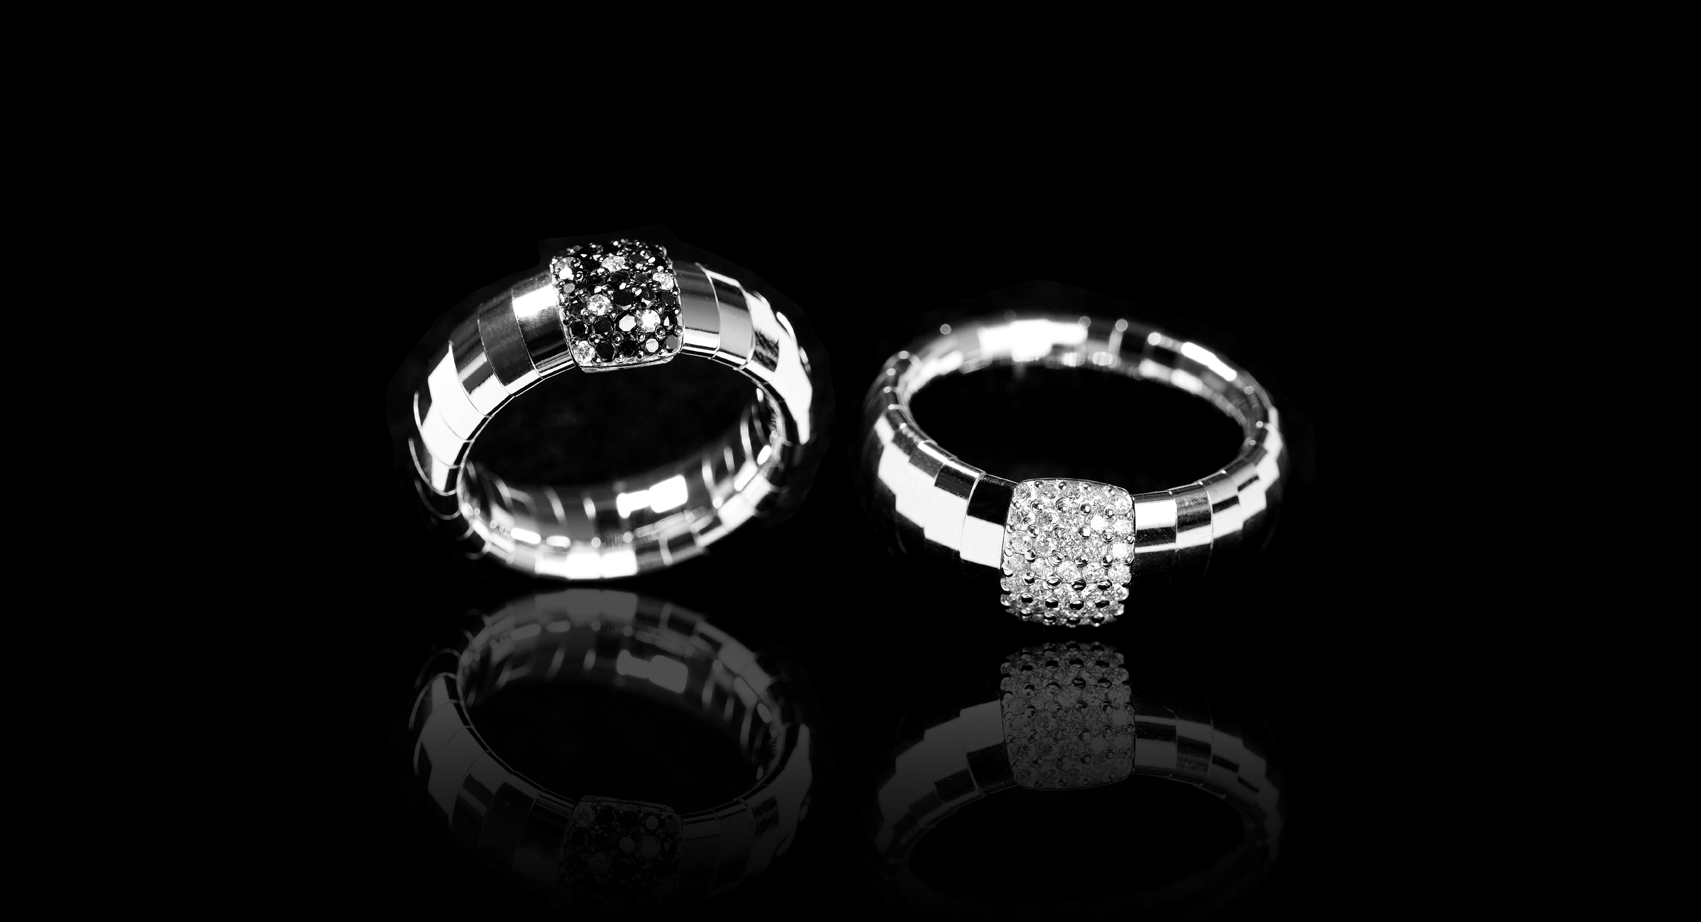 White Gold 18k g 4,90 -DN Ct. 0,45 -DB Ct. 0,10